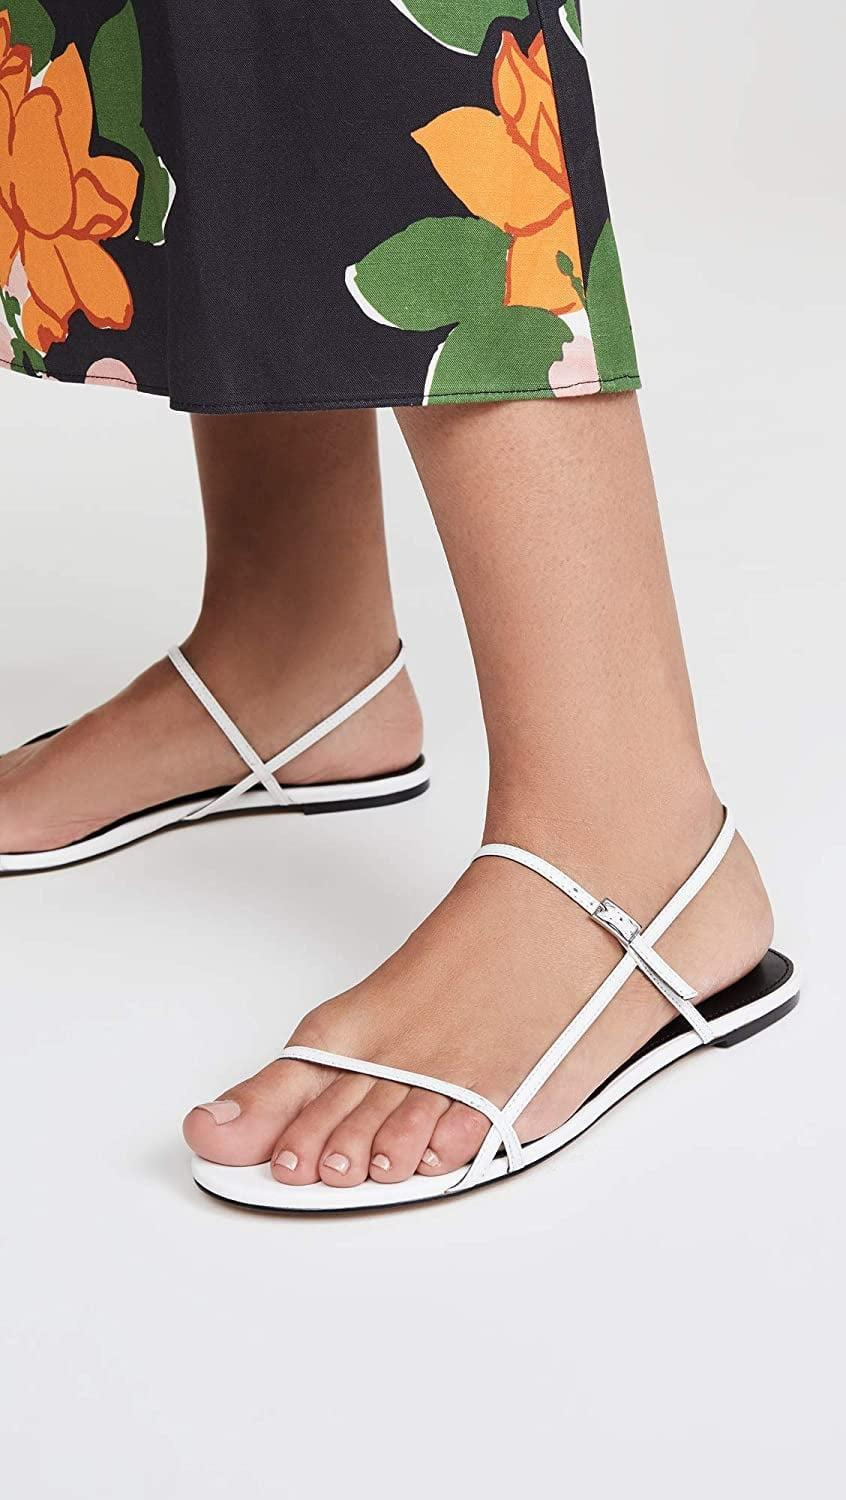 <p>These <span>Villa Rouge Porsche Sandals</span> ($36) look refreshingly modern and comfortable.</p>